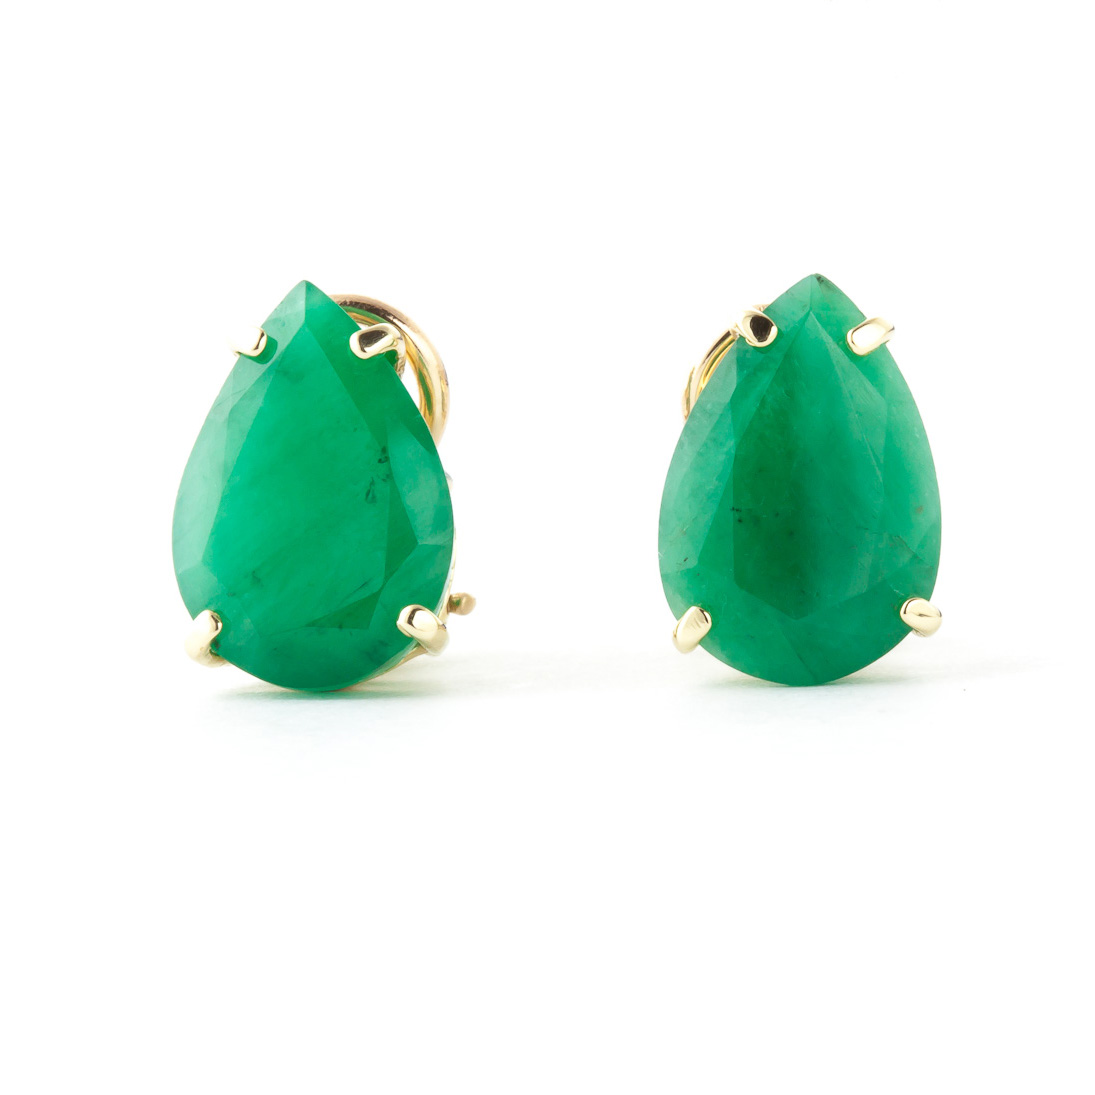 Emerald Droplet Stud Earrings 7.0ctw in 9ct Gold